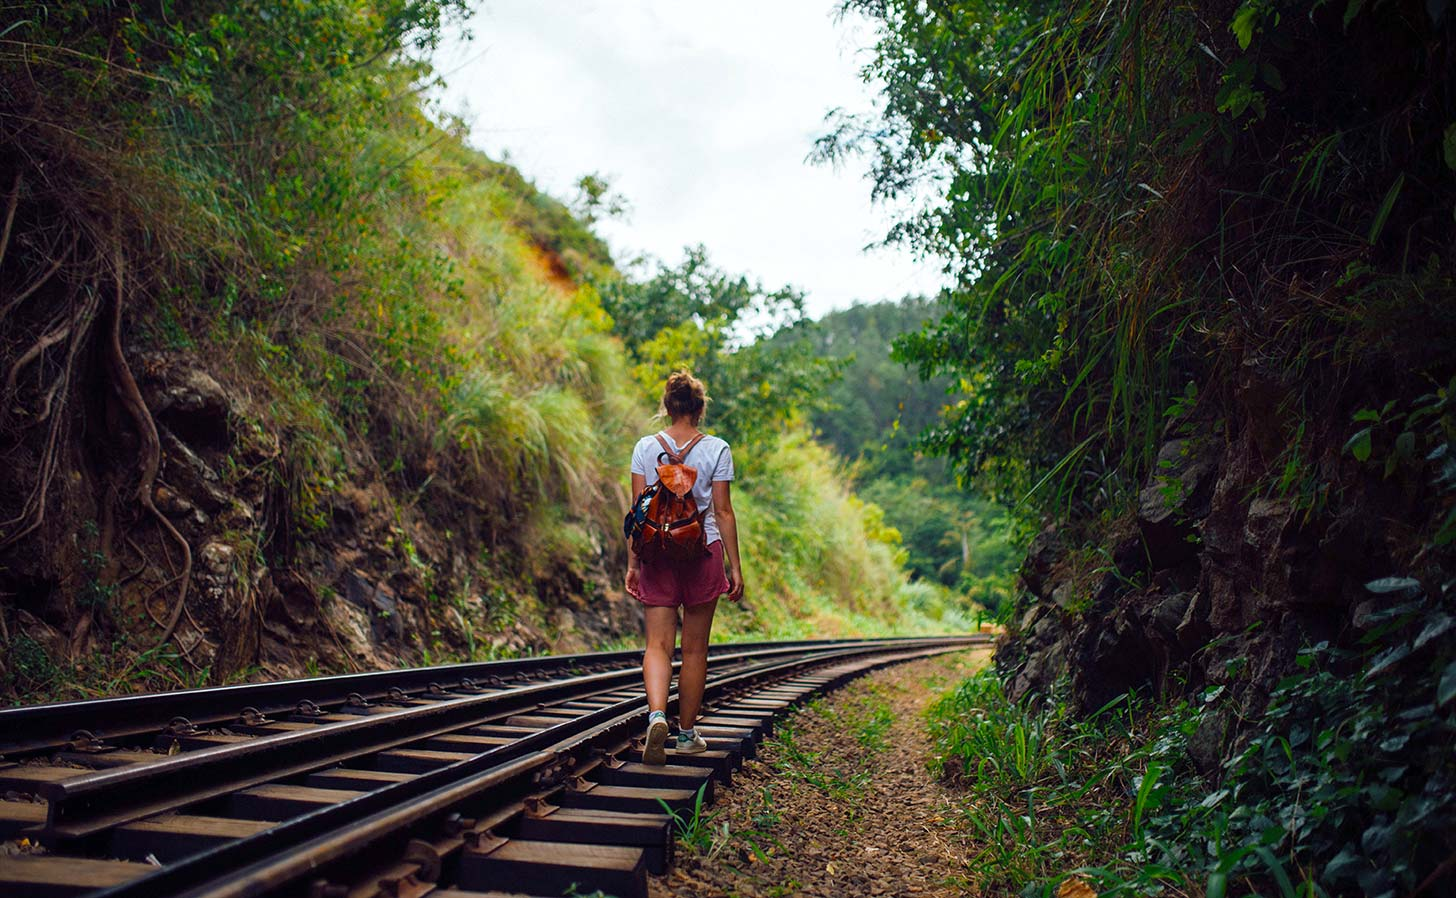 Read about 14 solo female travelers exploring the world. Photo: Etienne Boulanger / Unsplash